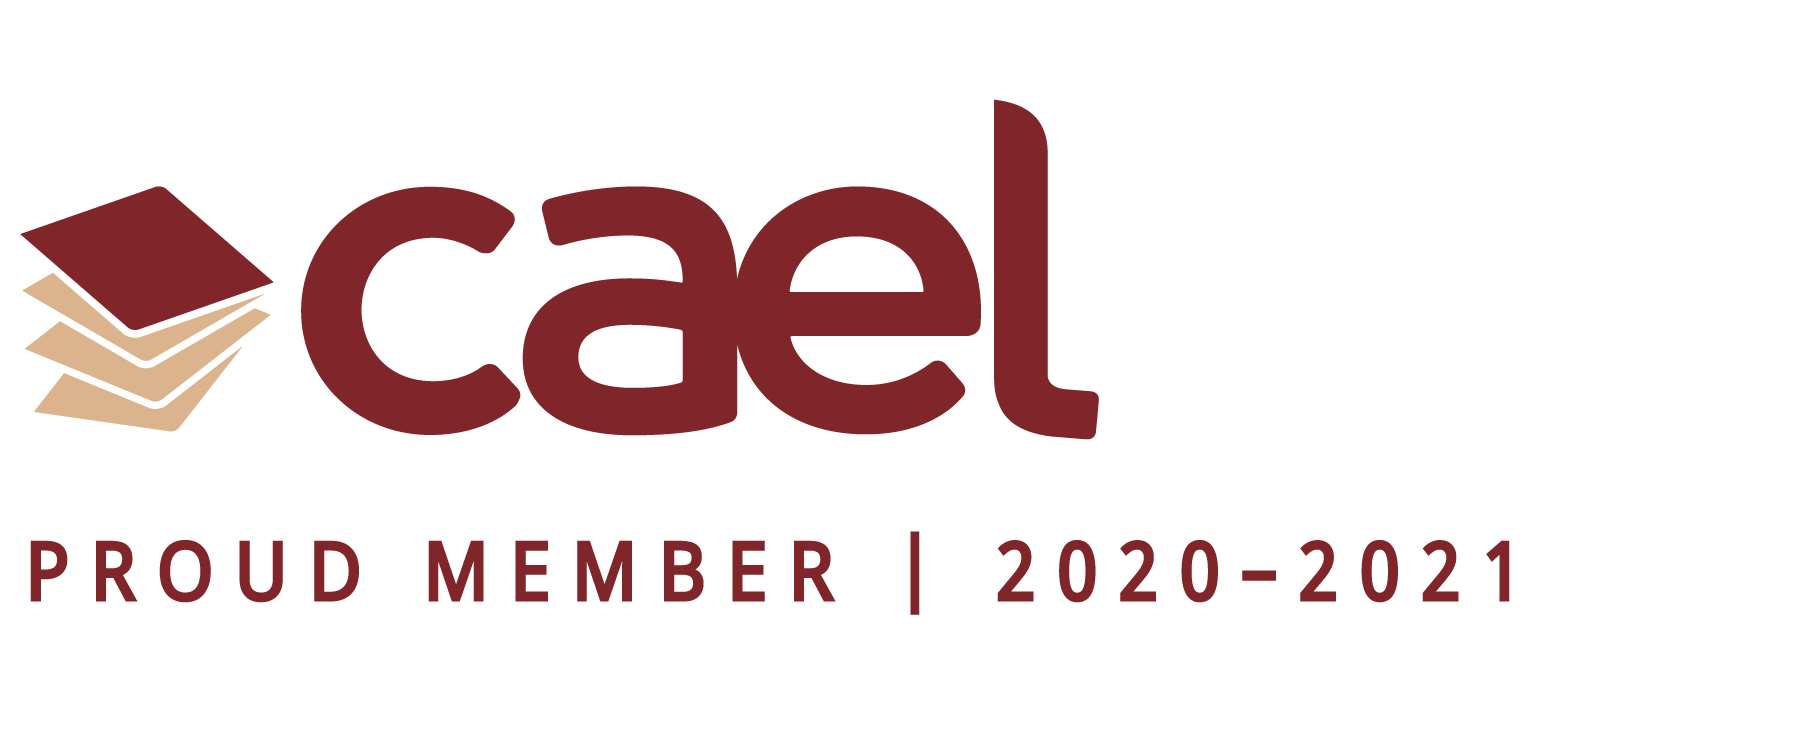 Logo for CAEL for academic year 2020-21